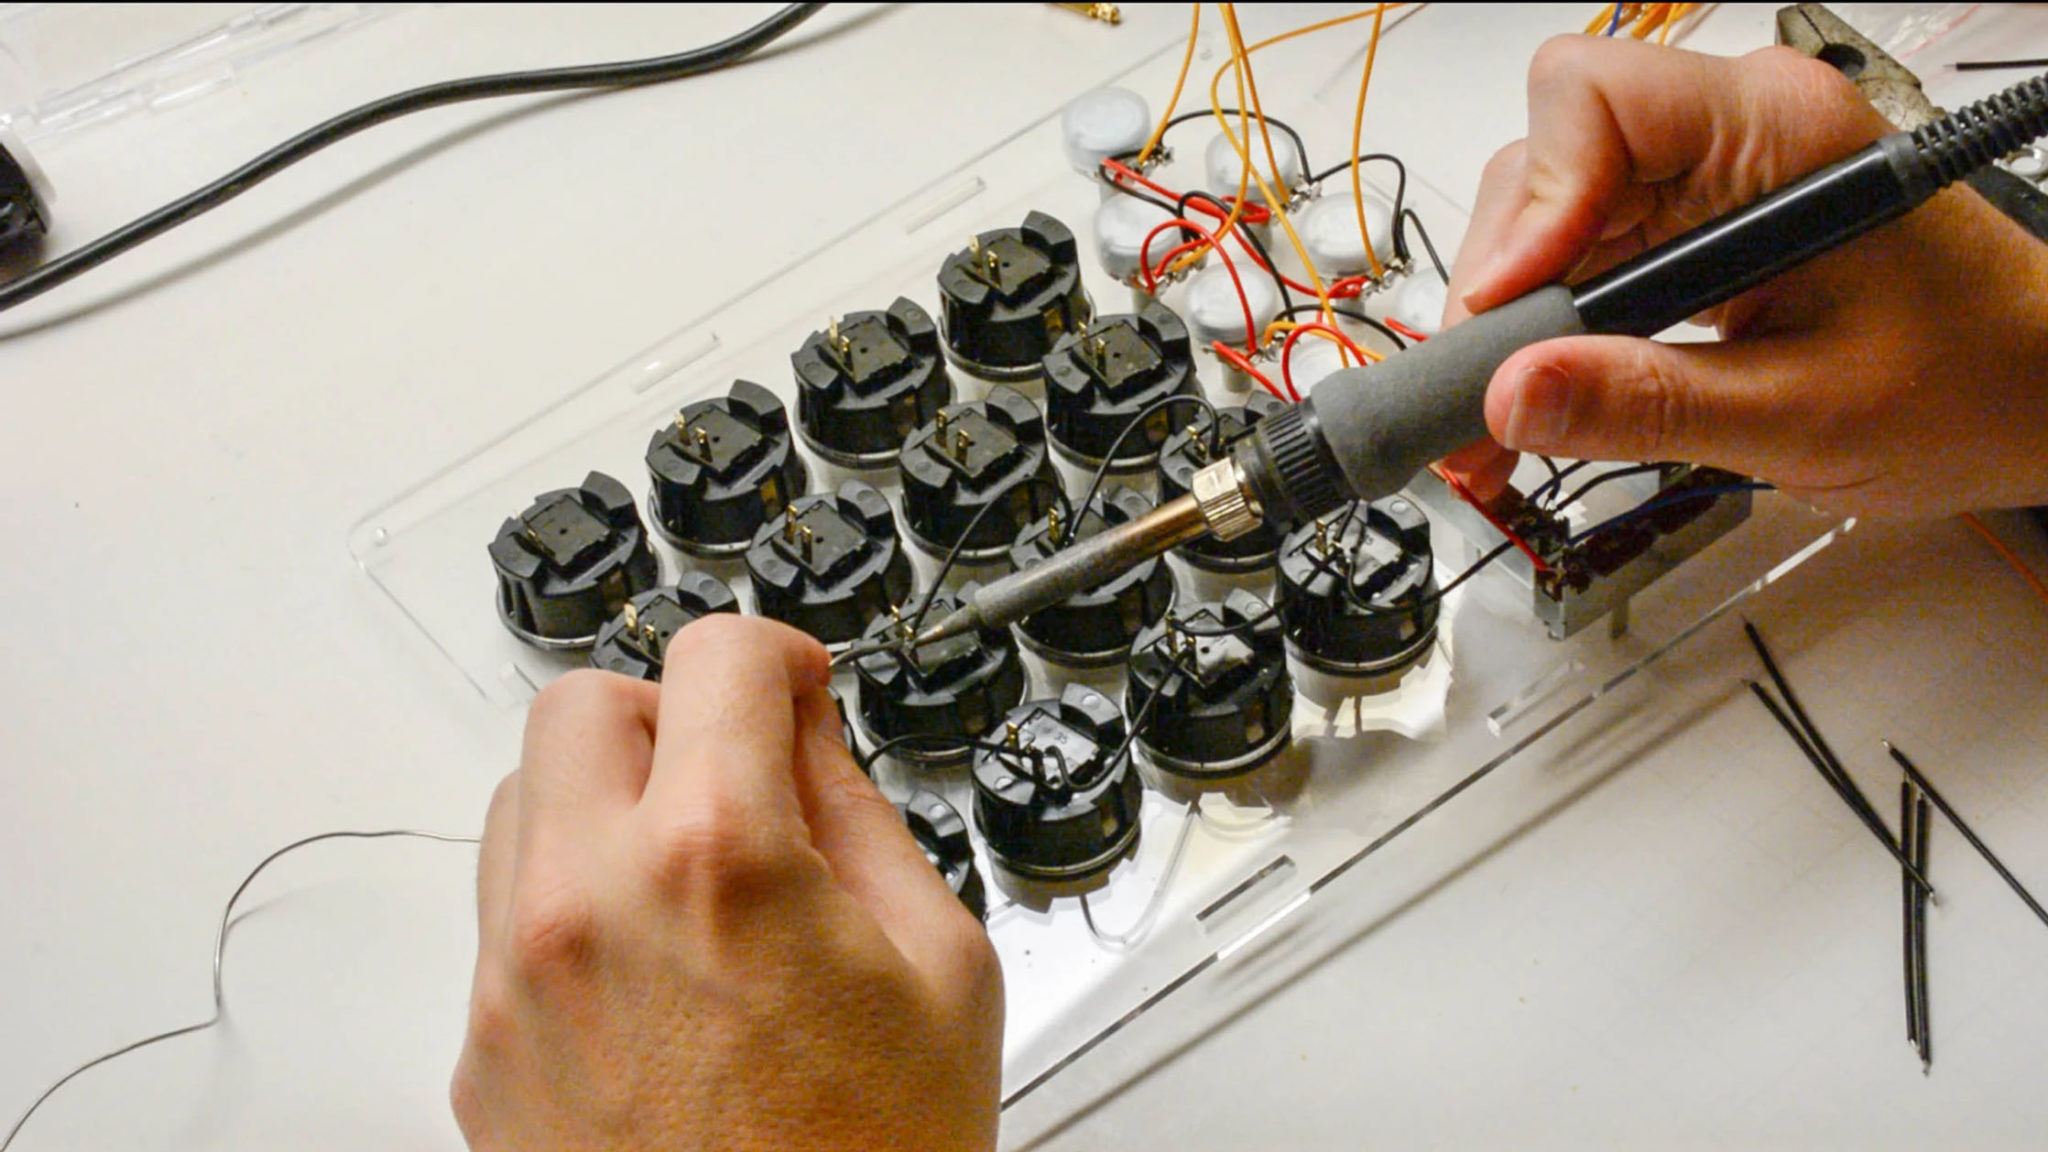 01-soldering-the-wires